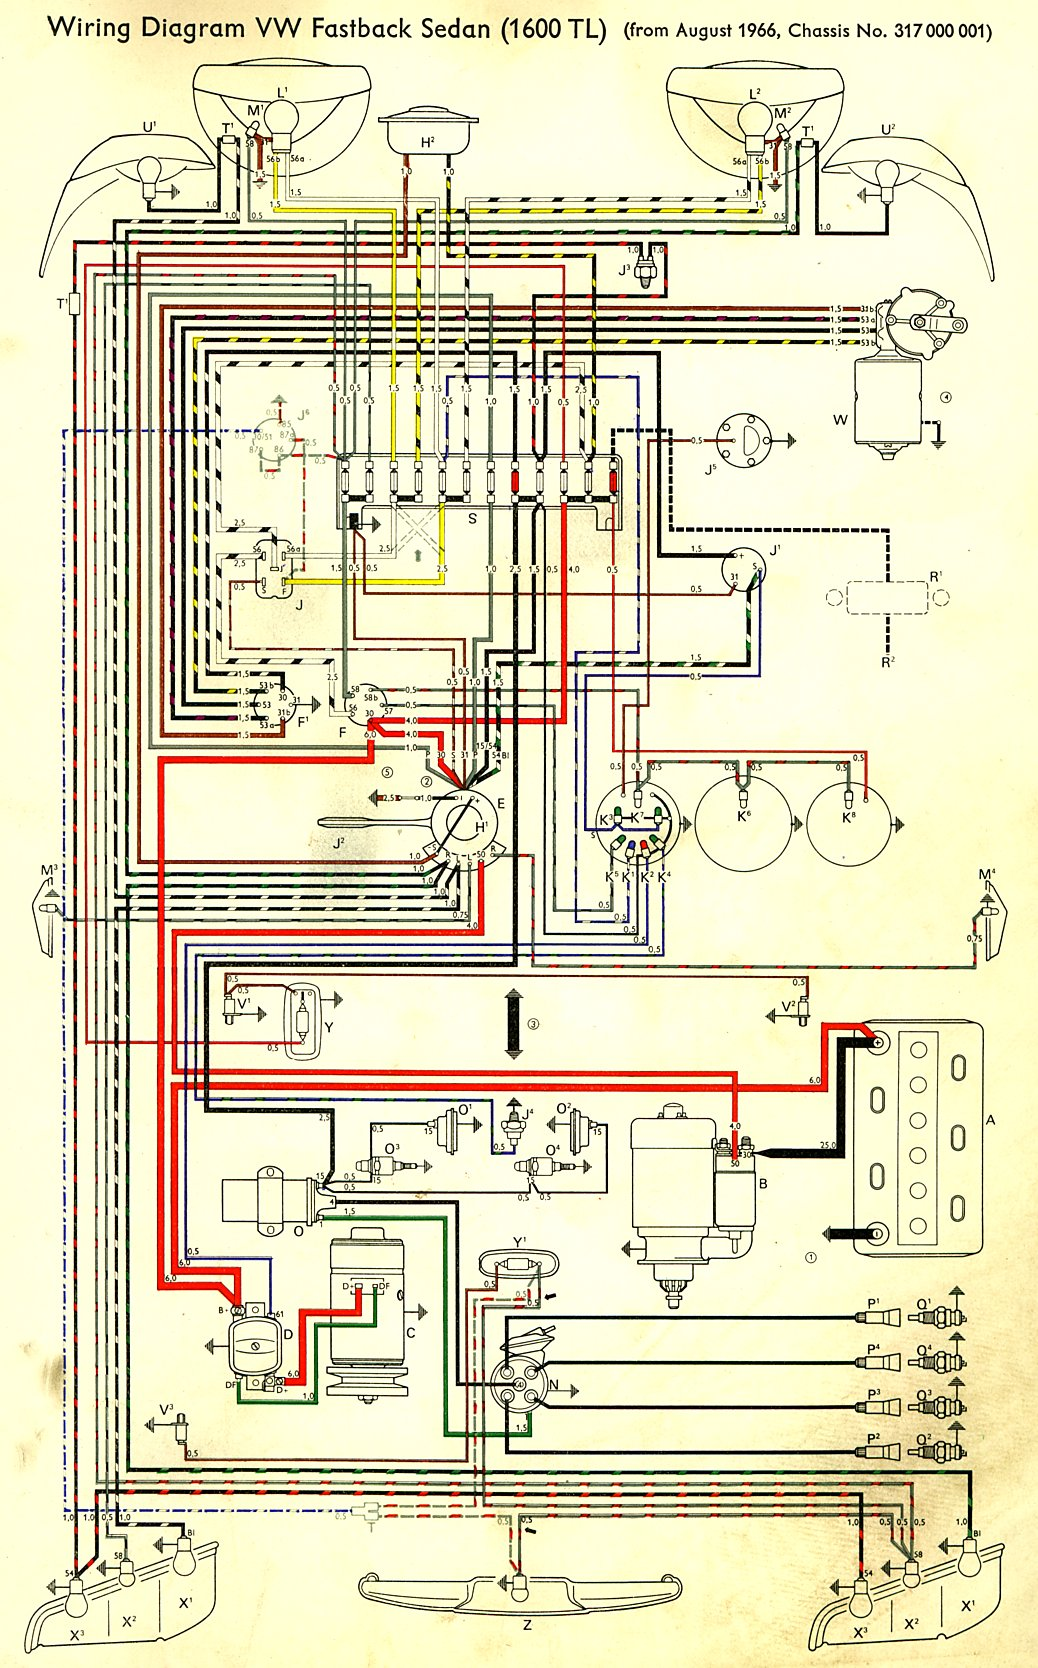 thesamba.com :: type 3 wiring diagrams 1936 volkswagen beetle engine diagram 1971 volkswagen beetle engine wiring #10